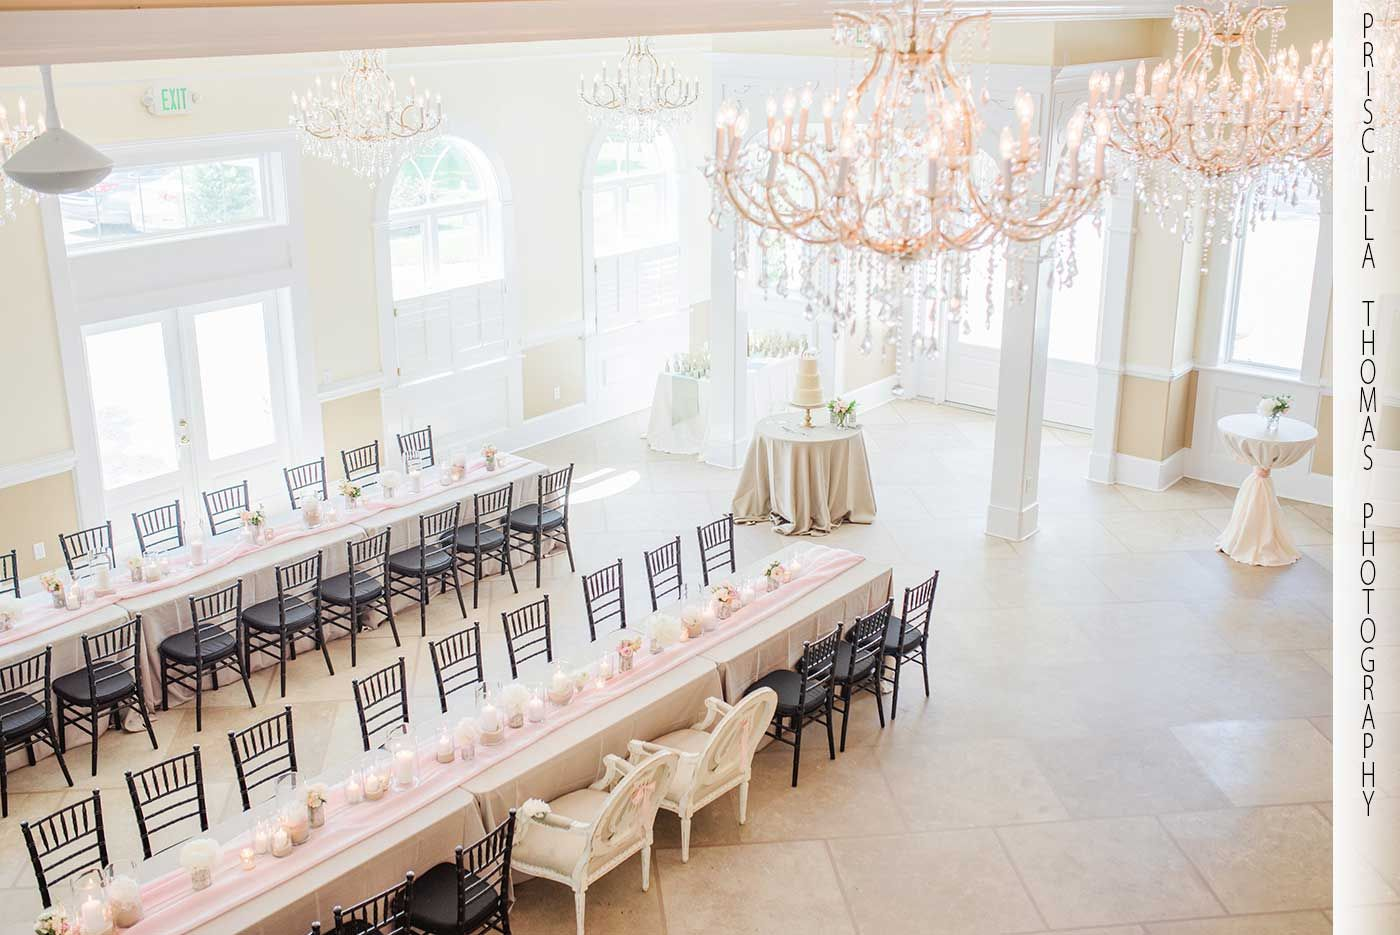 Gallery of weddings and receptions held at the Tybee Island Wedding ...